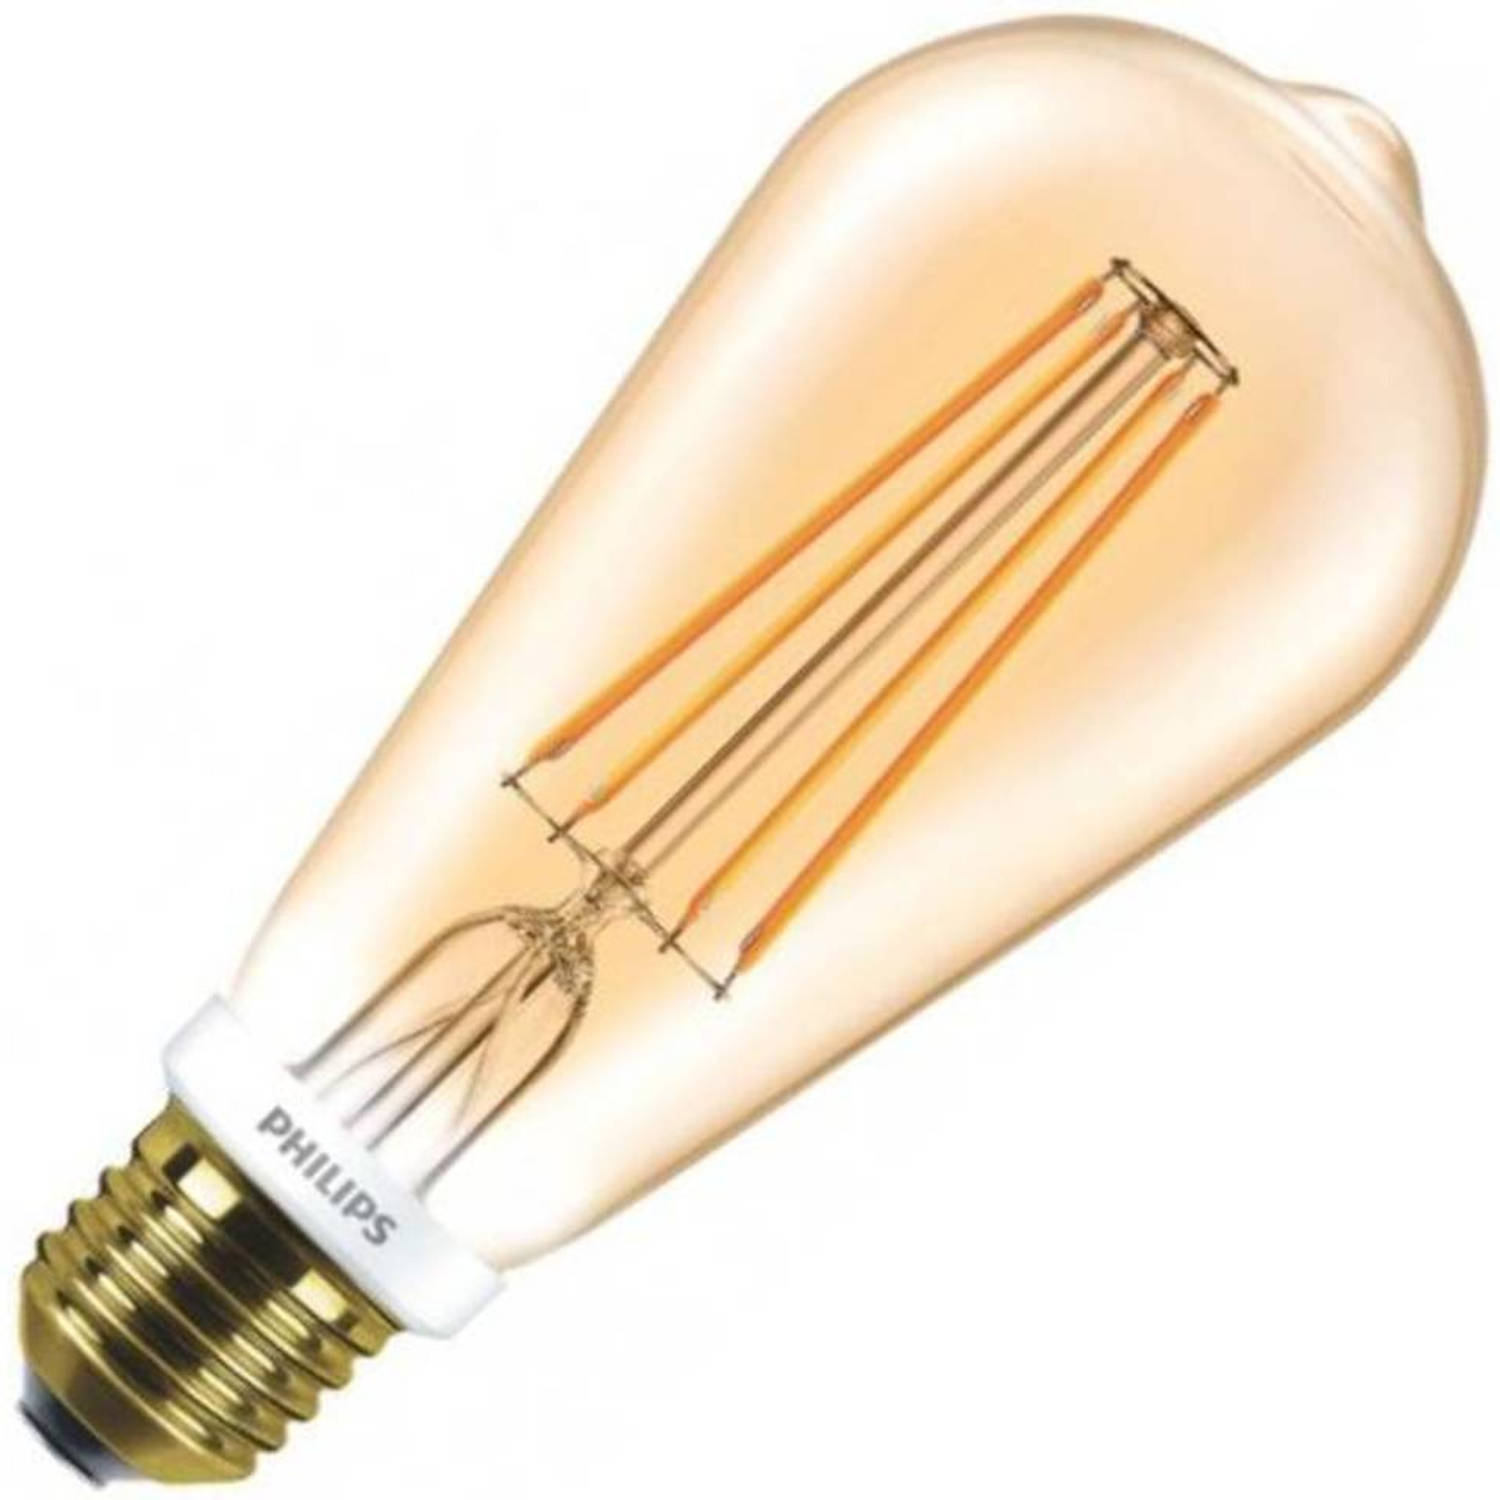 Philips rustikalamp led filament goud 7w (vervangt 55w) grote fitting grote fitting e27